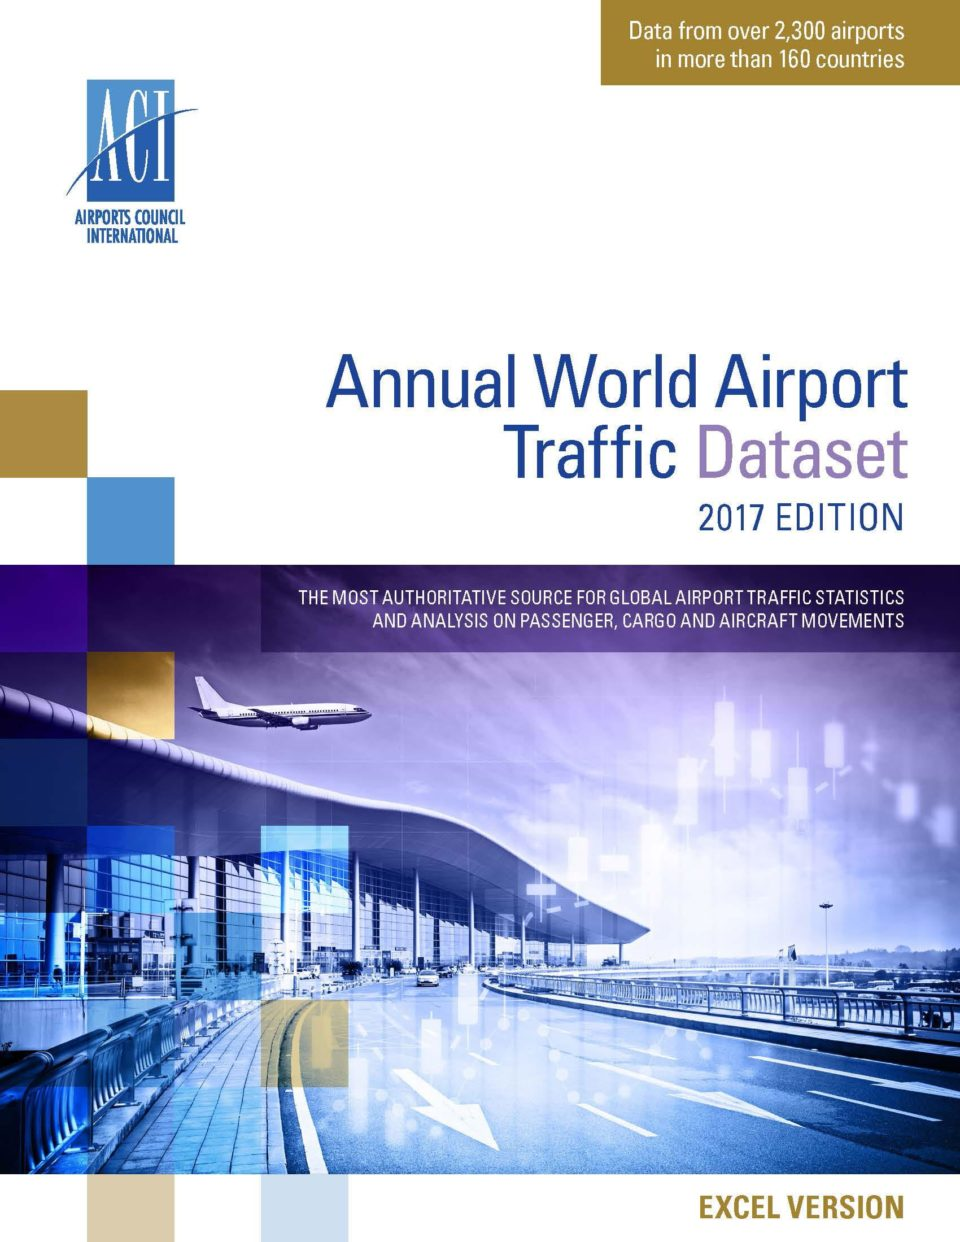 Annual World Airport Traffic Dataset, 2017